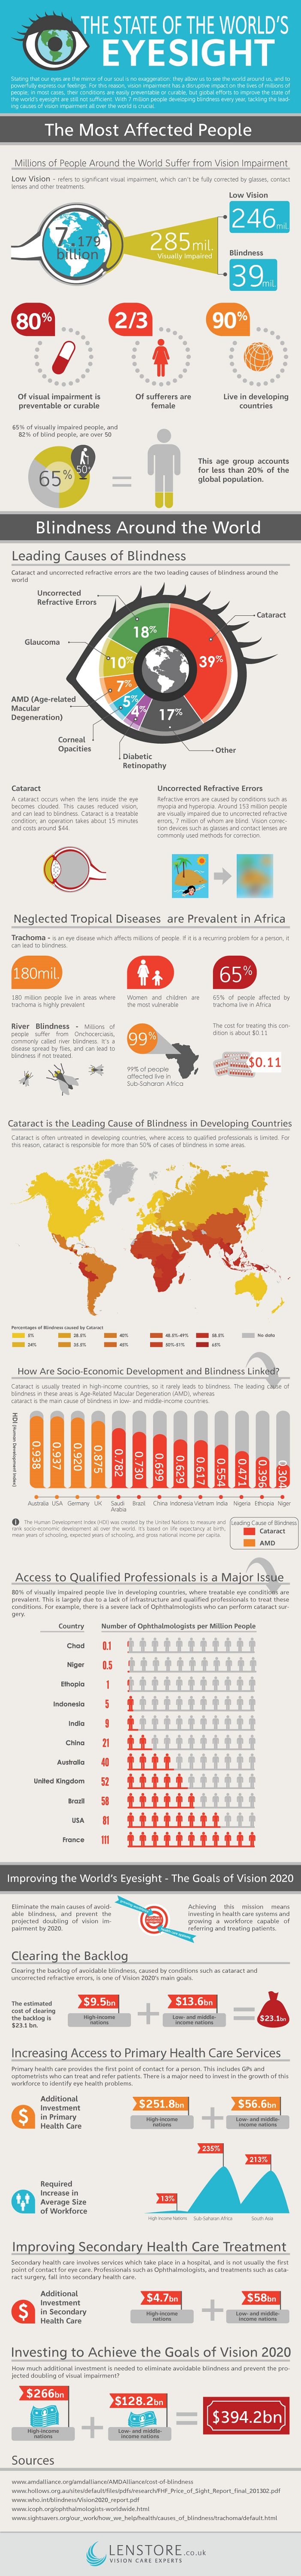 The state of the world's eyesight infographic